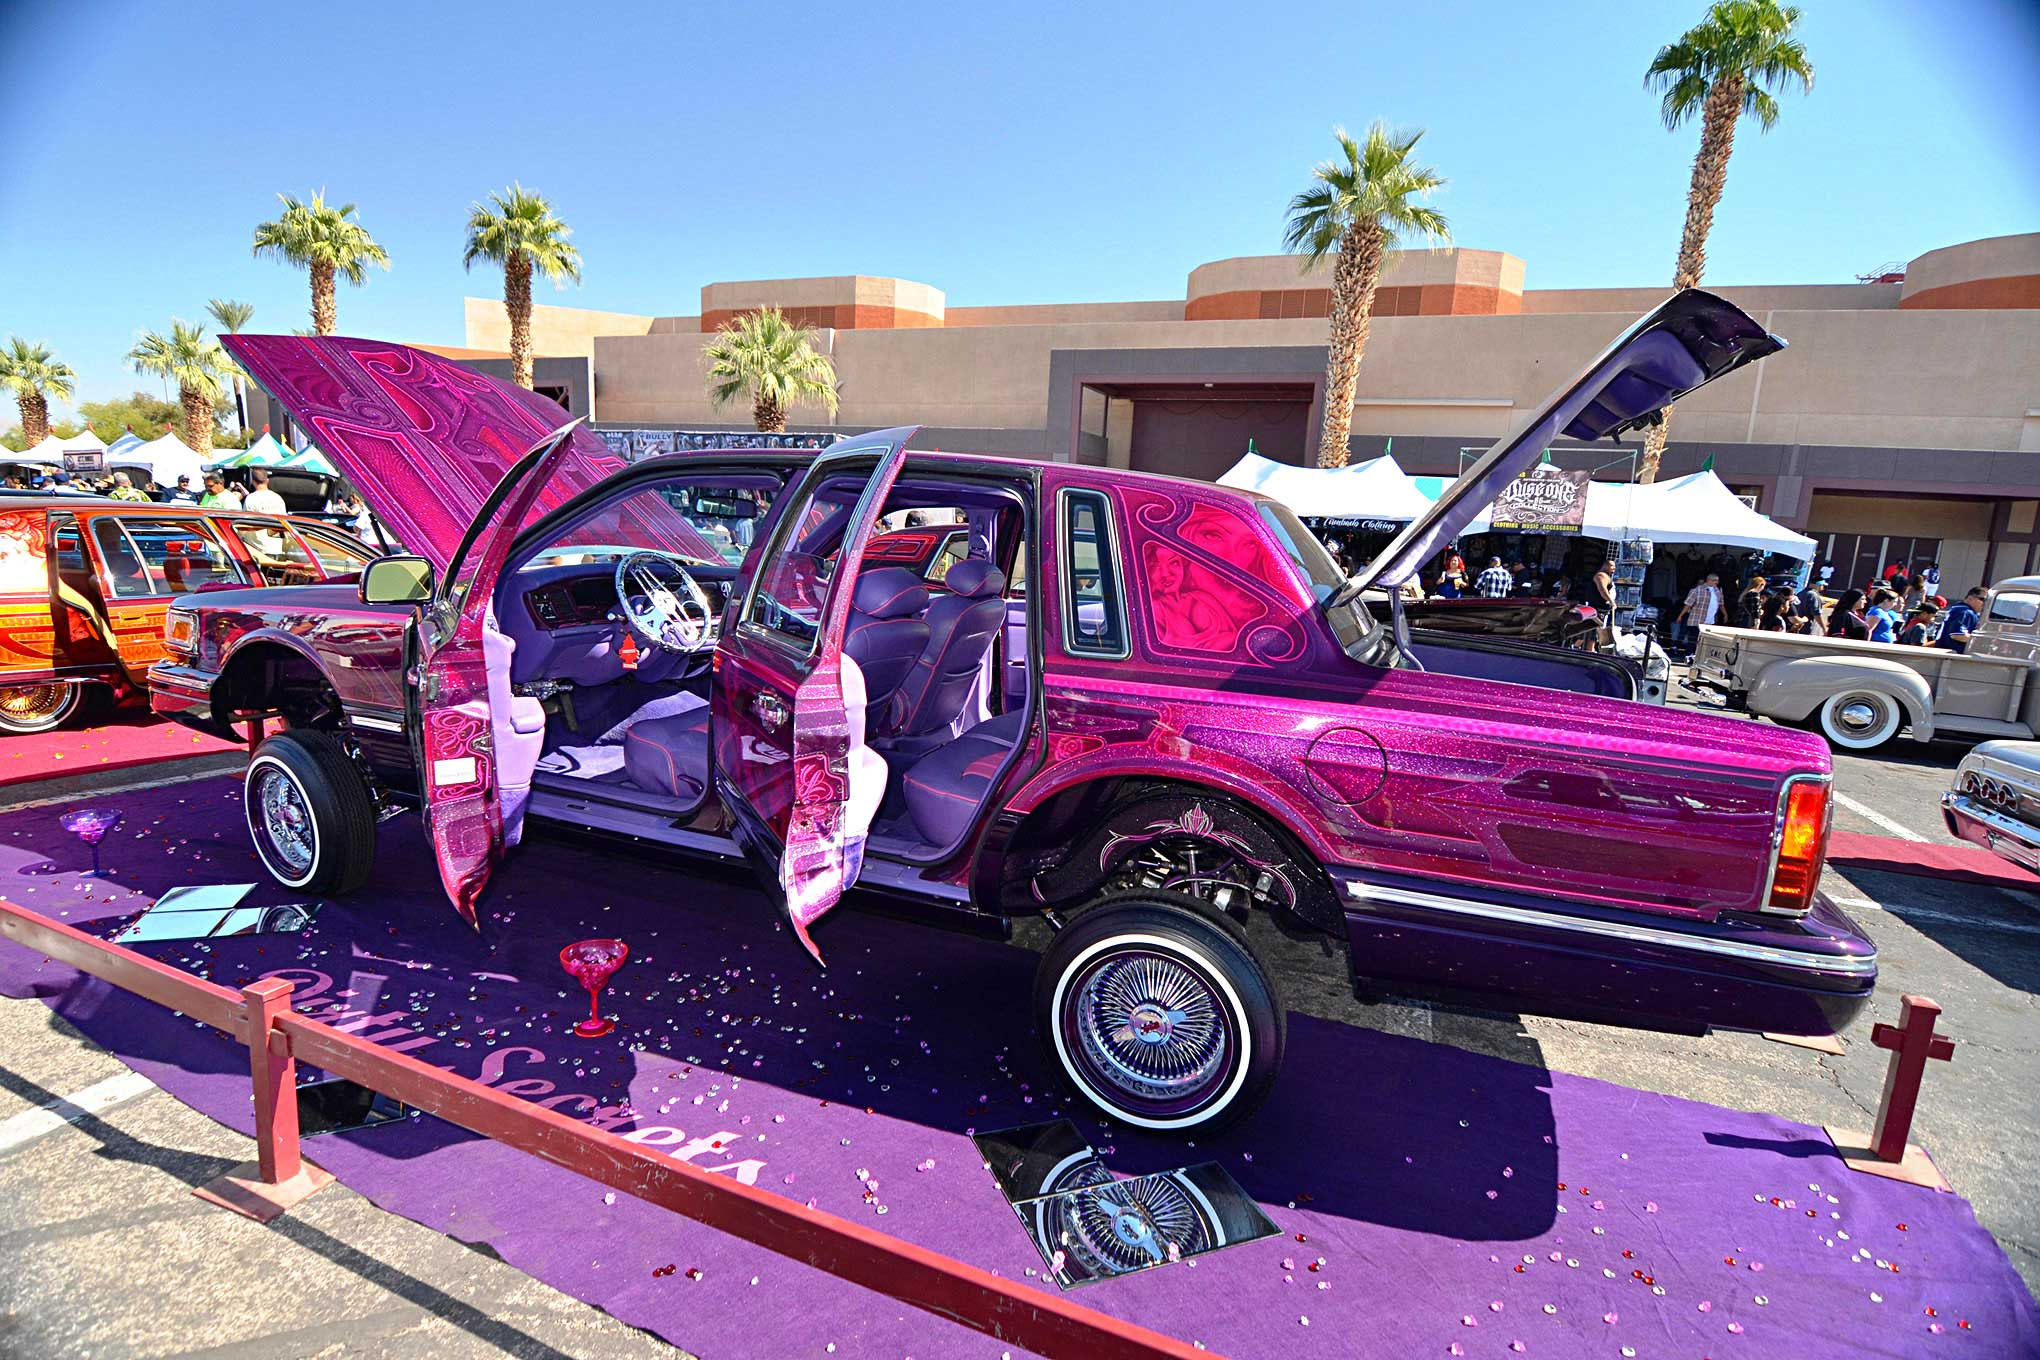 Lincoln Town Car 2016 >> 2016 Las Vegas Super Show Burgunday Lincoln Towncar Lowrider